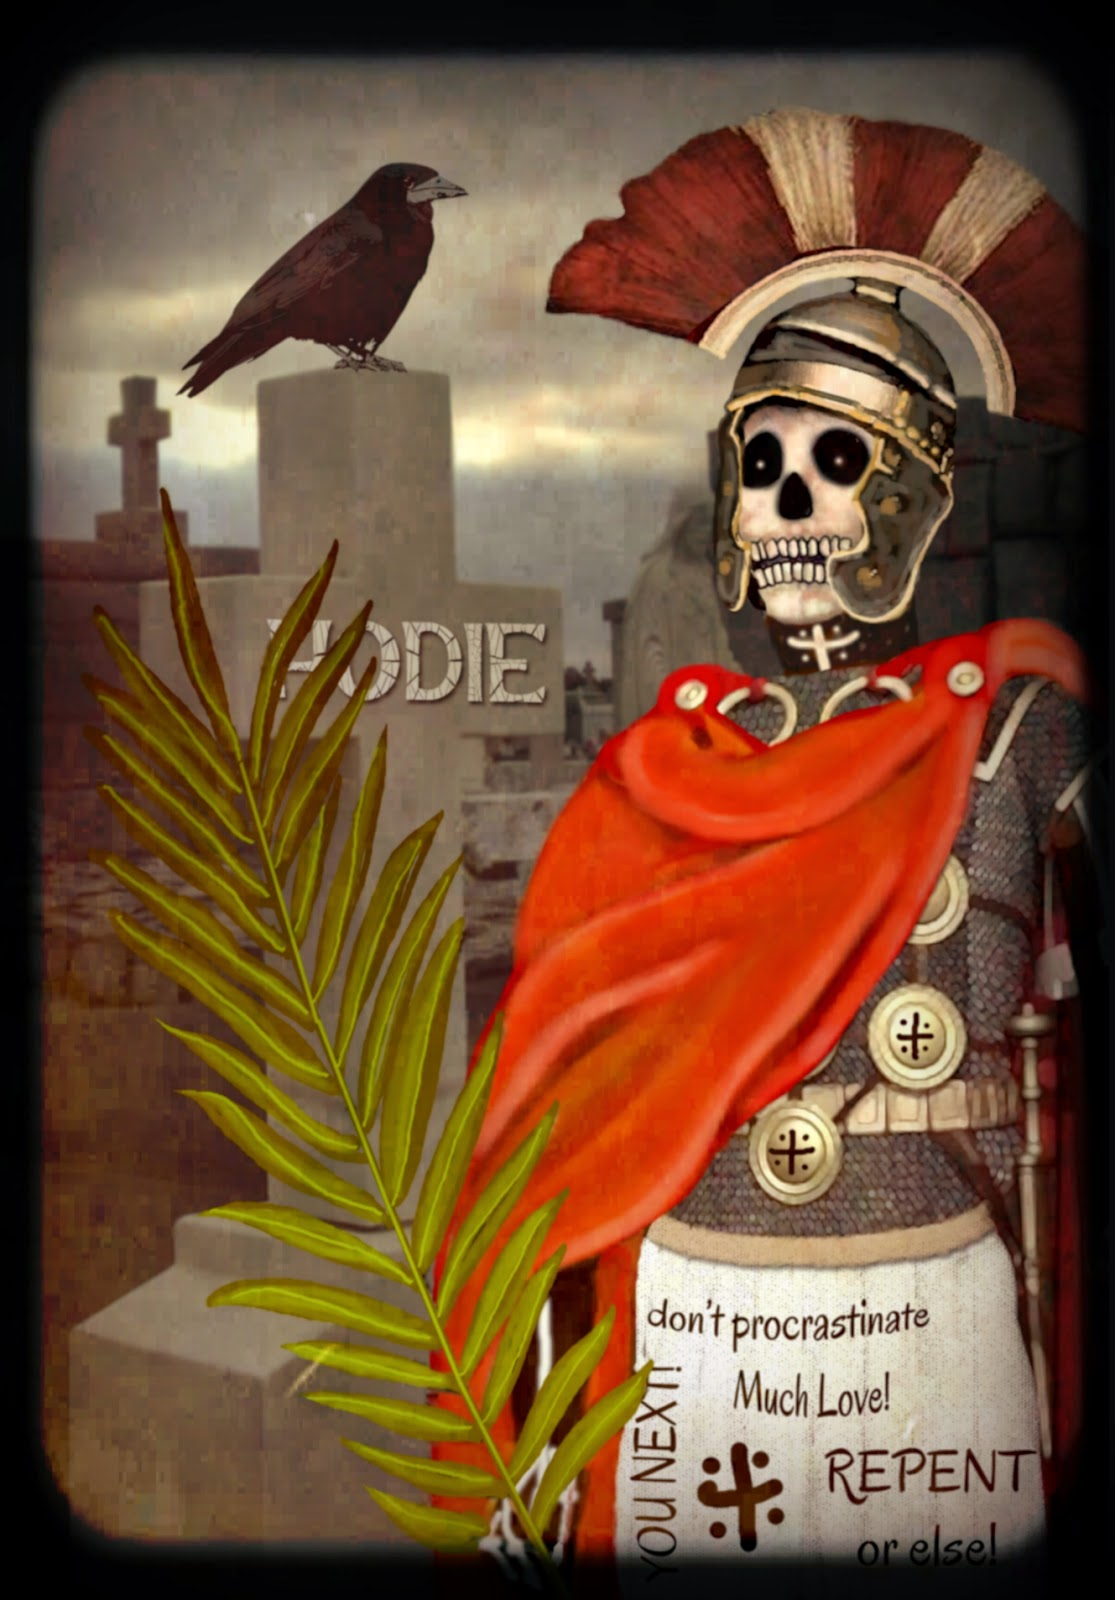 Saint Expedite as Baron Samedi in New Orleans Voudou